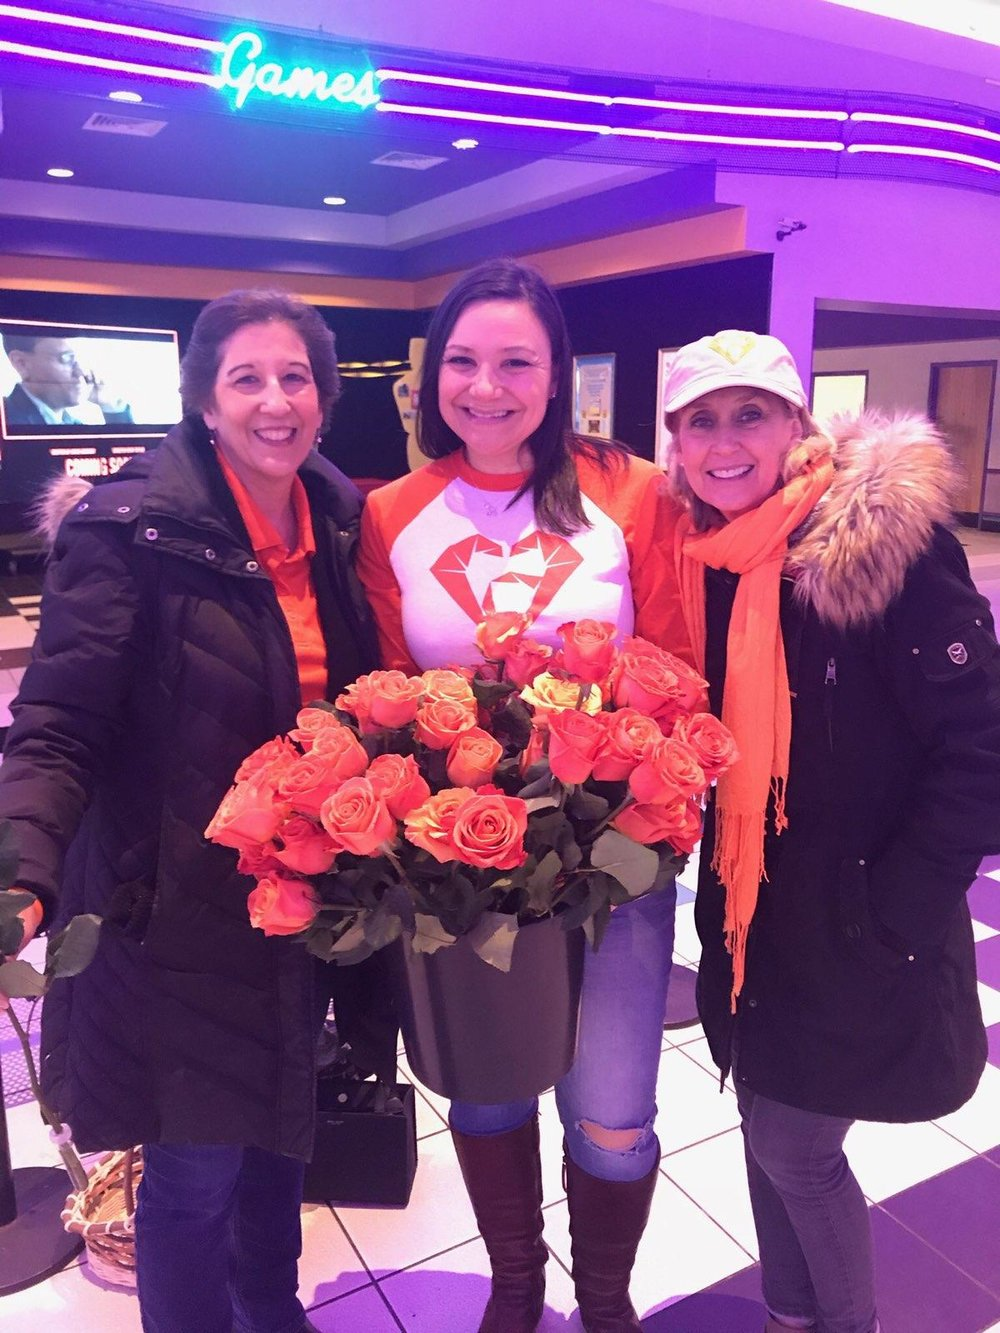 3 of our founding RAM members shared orange roses Friday night with folks at Charlestowne Theatre.  Spreading kindness and beauty!  Great job ladies!